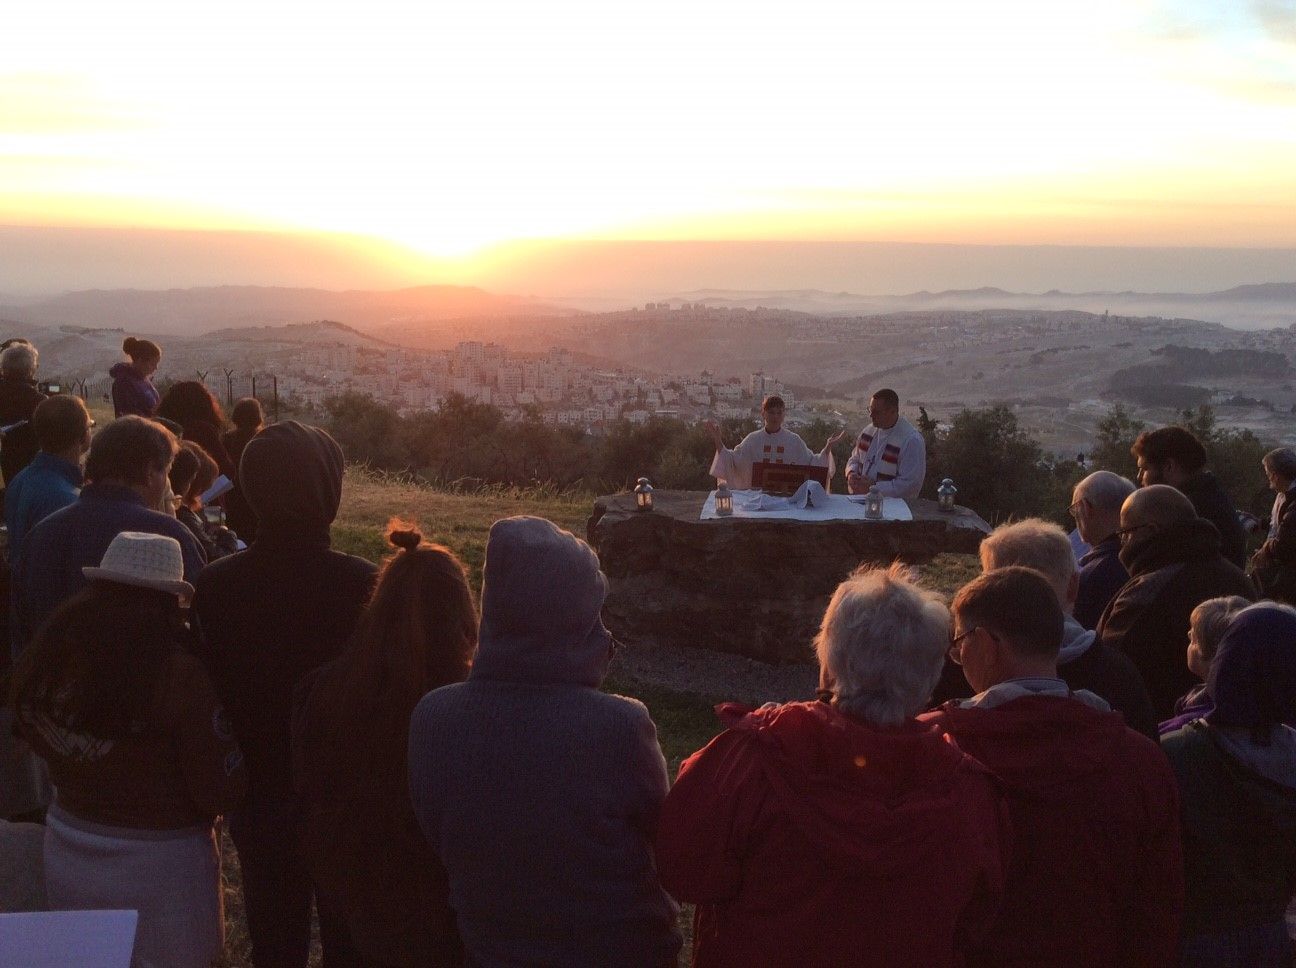 The English-speaking congregation of the Lutheran Church of the Redeemer celebrates Easter Sunday morning at a sunrise service on the Mount of Olives in Jerusalem